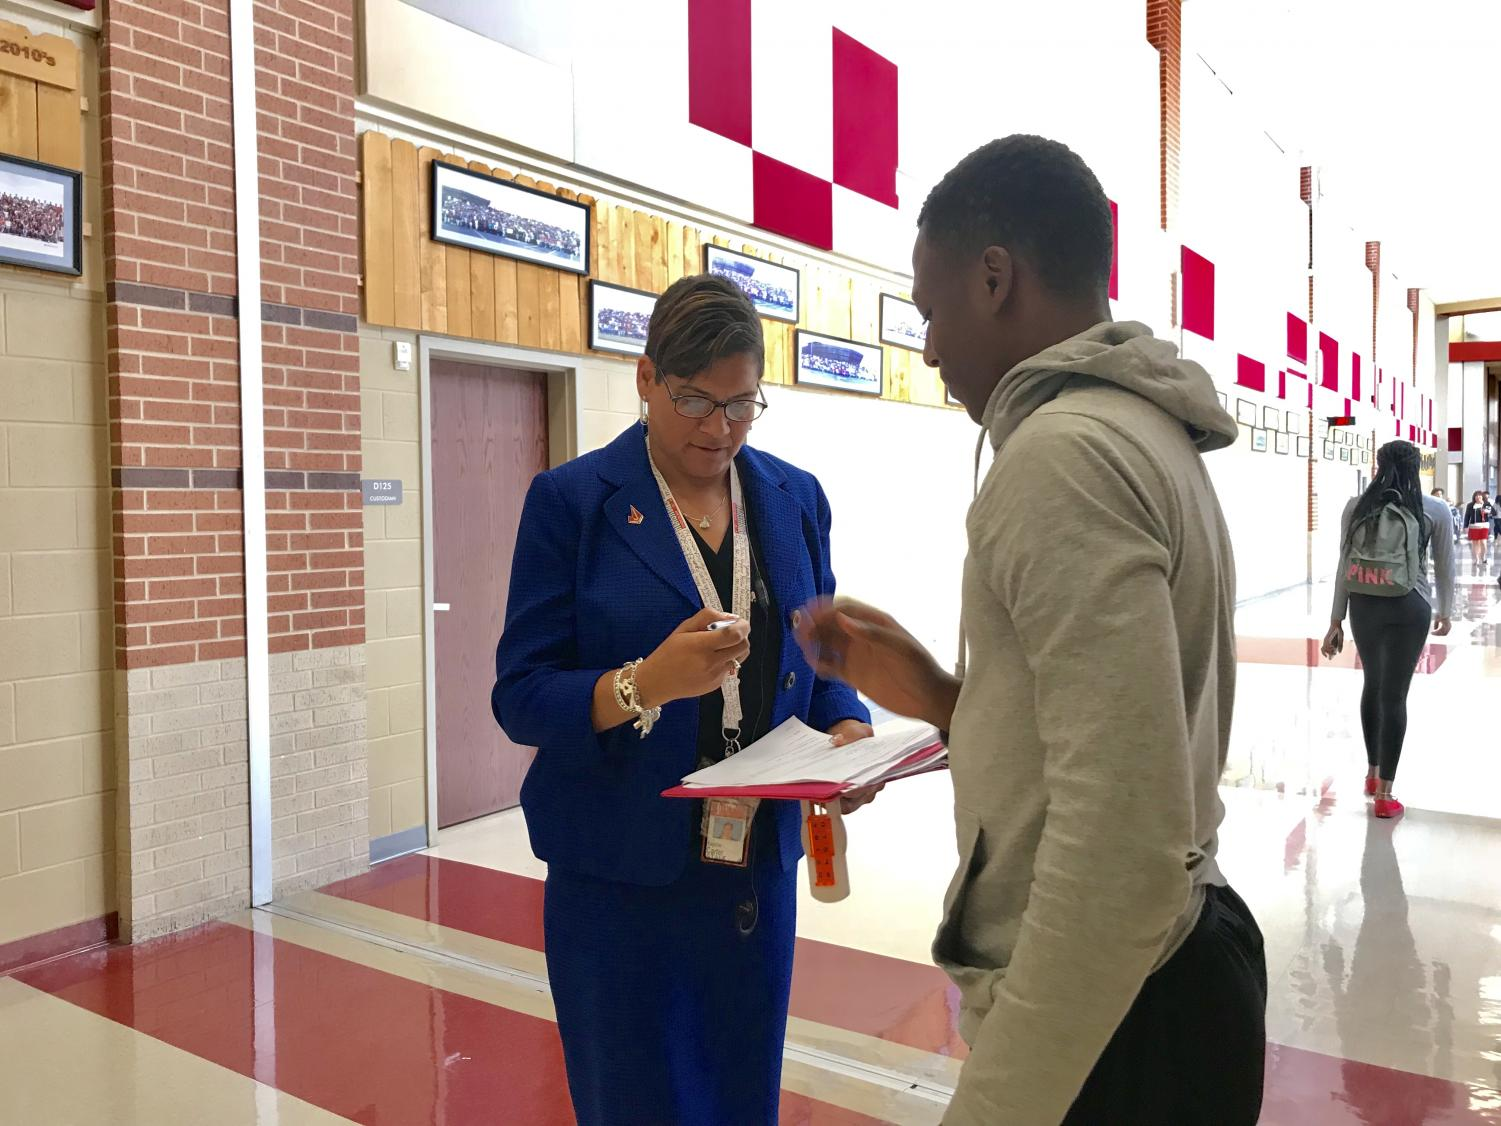 Carter signs student's form in the hallway. Carter attended Judson herself and graduated in the class of 1991.